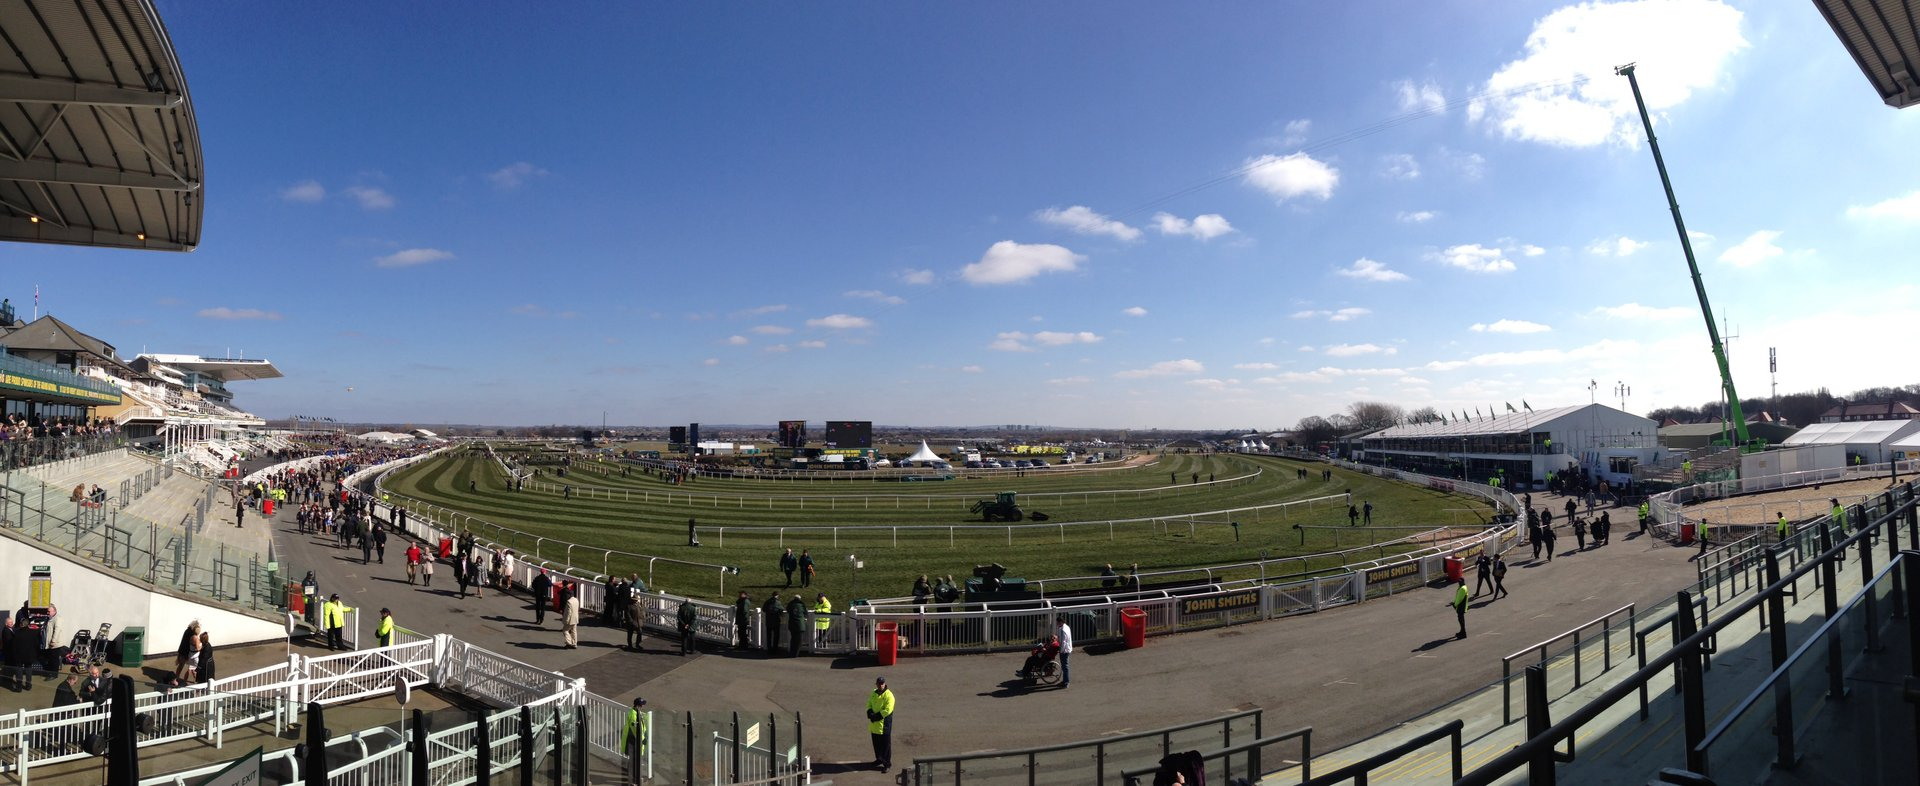 Aintree Grand National in England - Best Season 2020